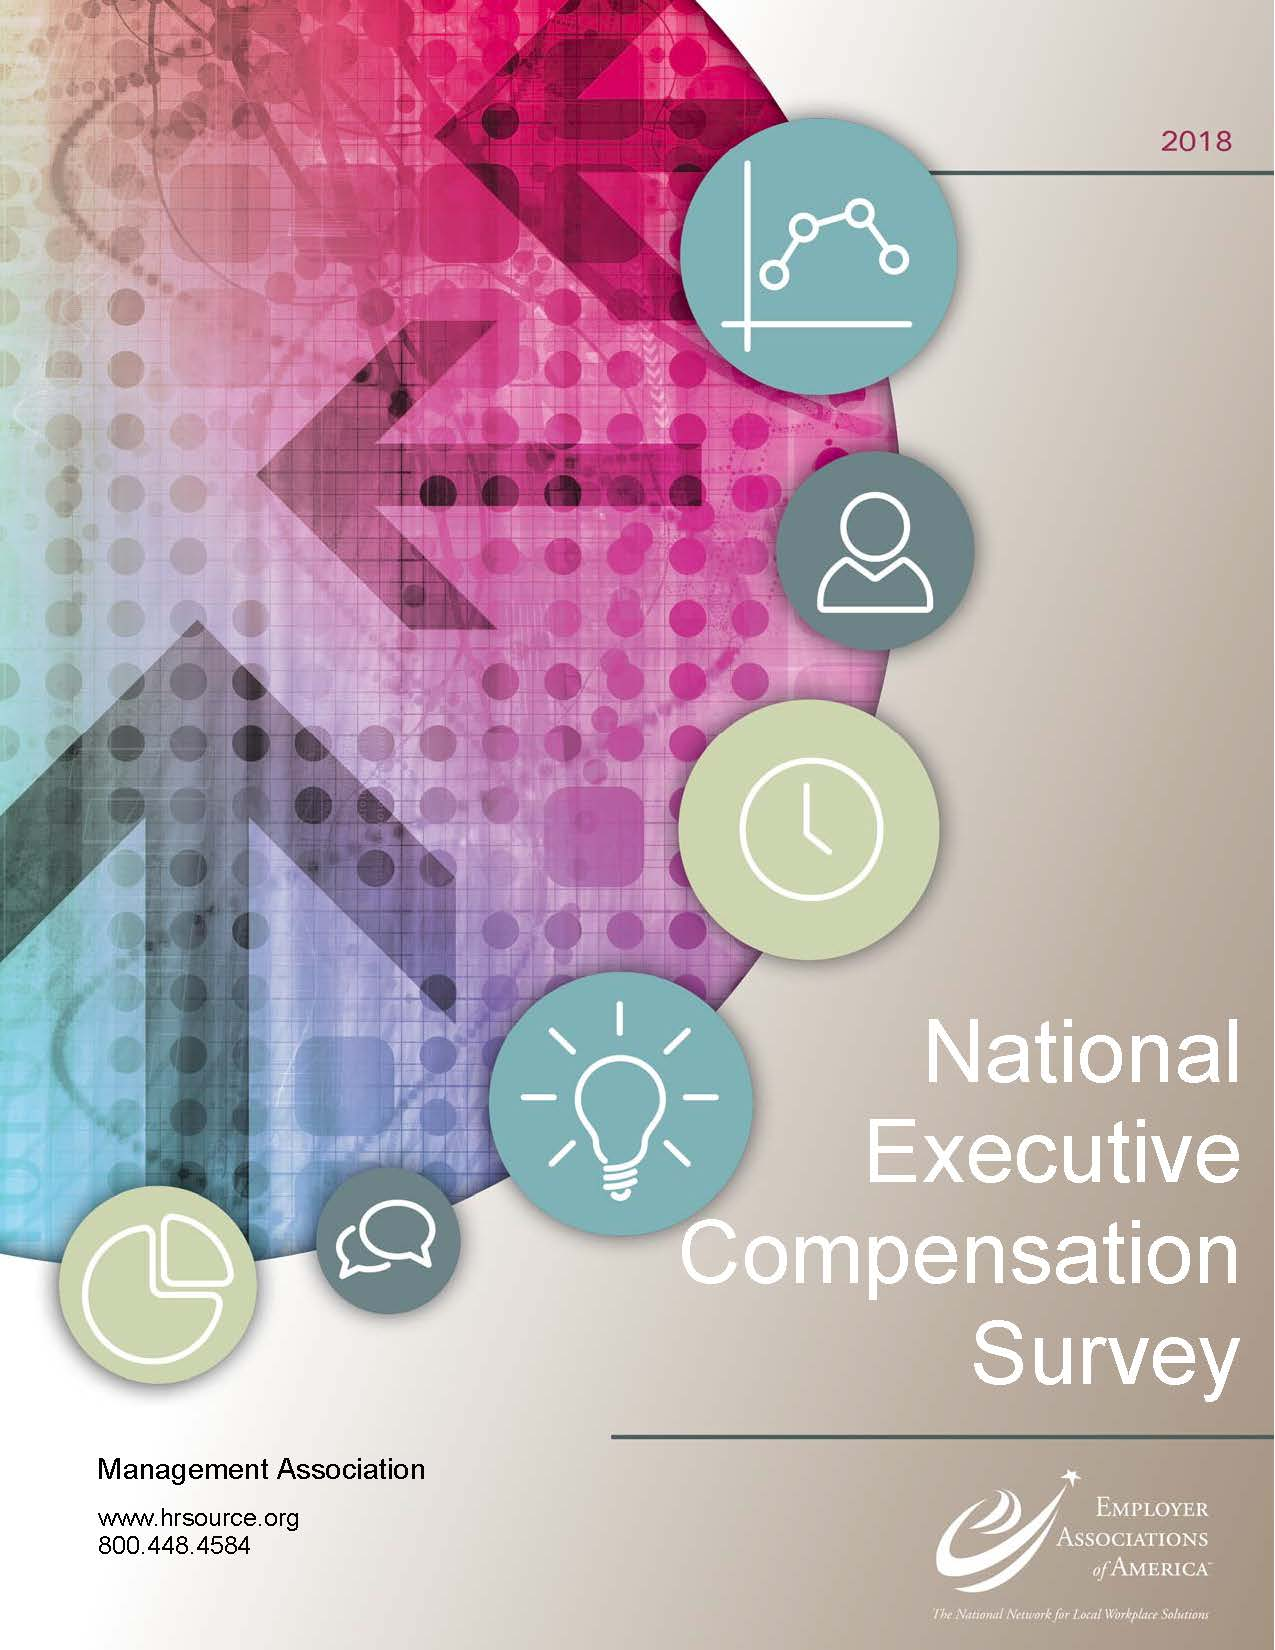 2018 National Executive Compensation Survey